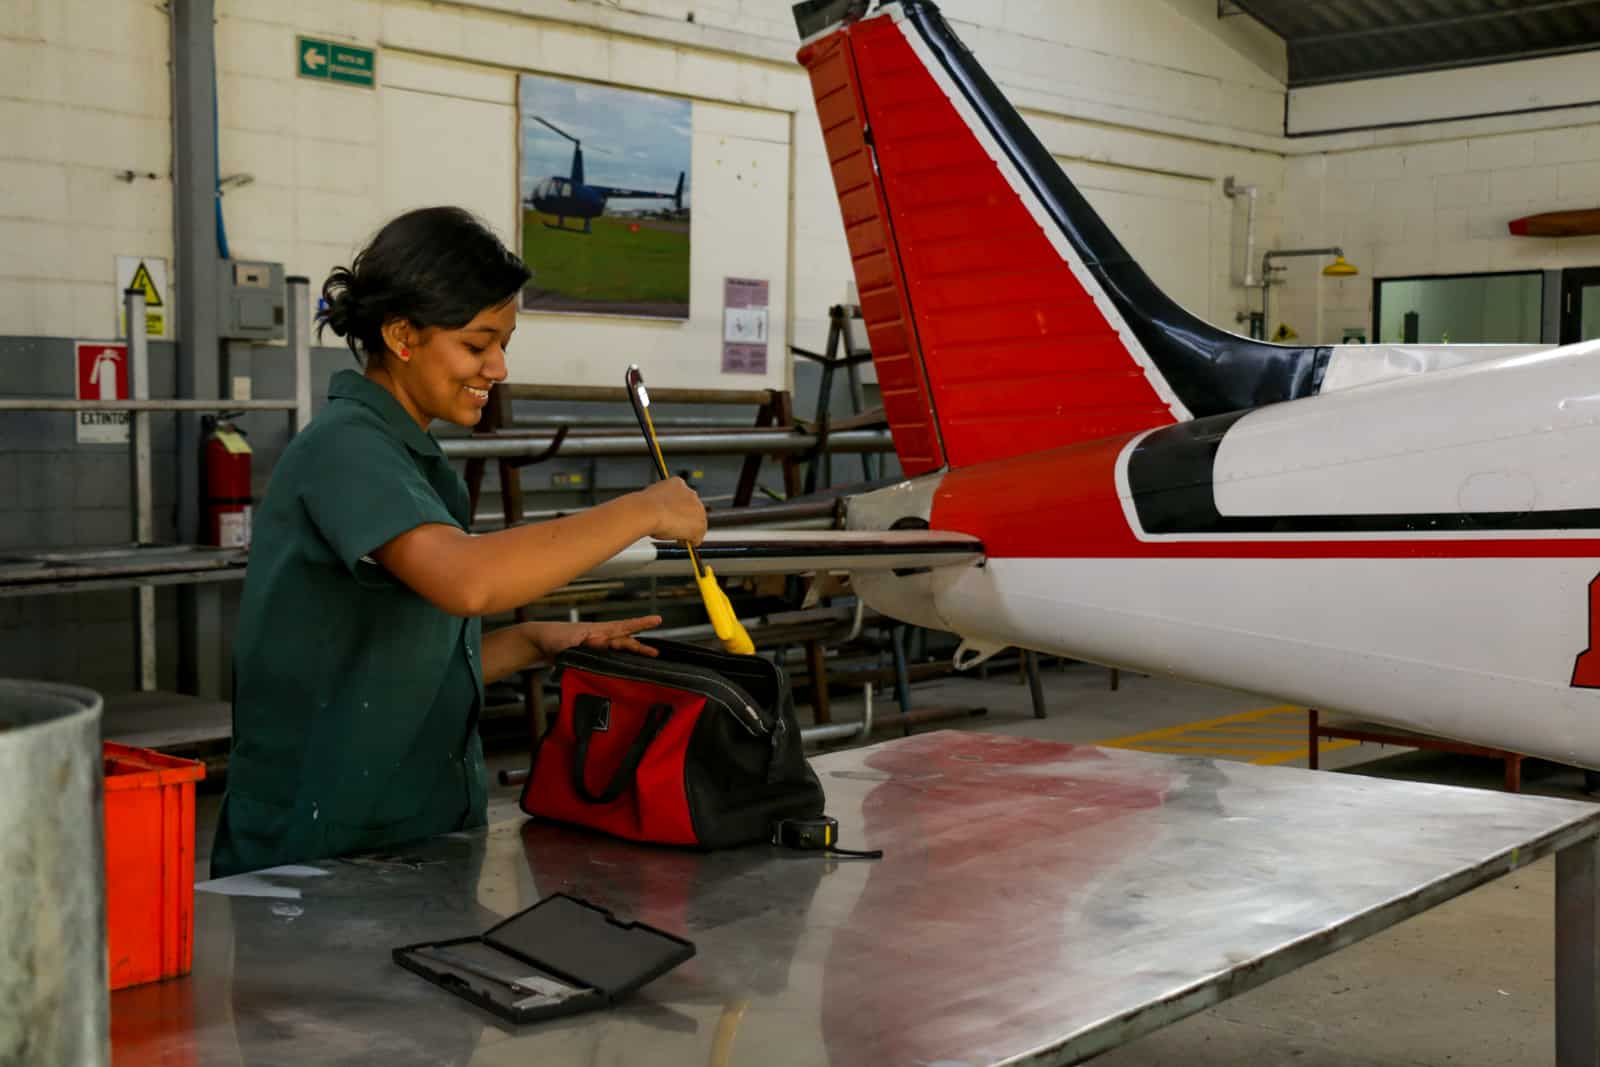 3 Things Paving My Way to Be an Aviation Mechanic